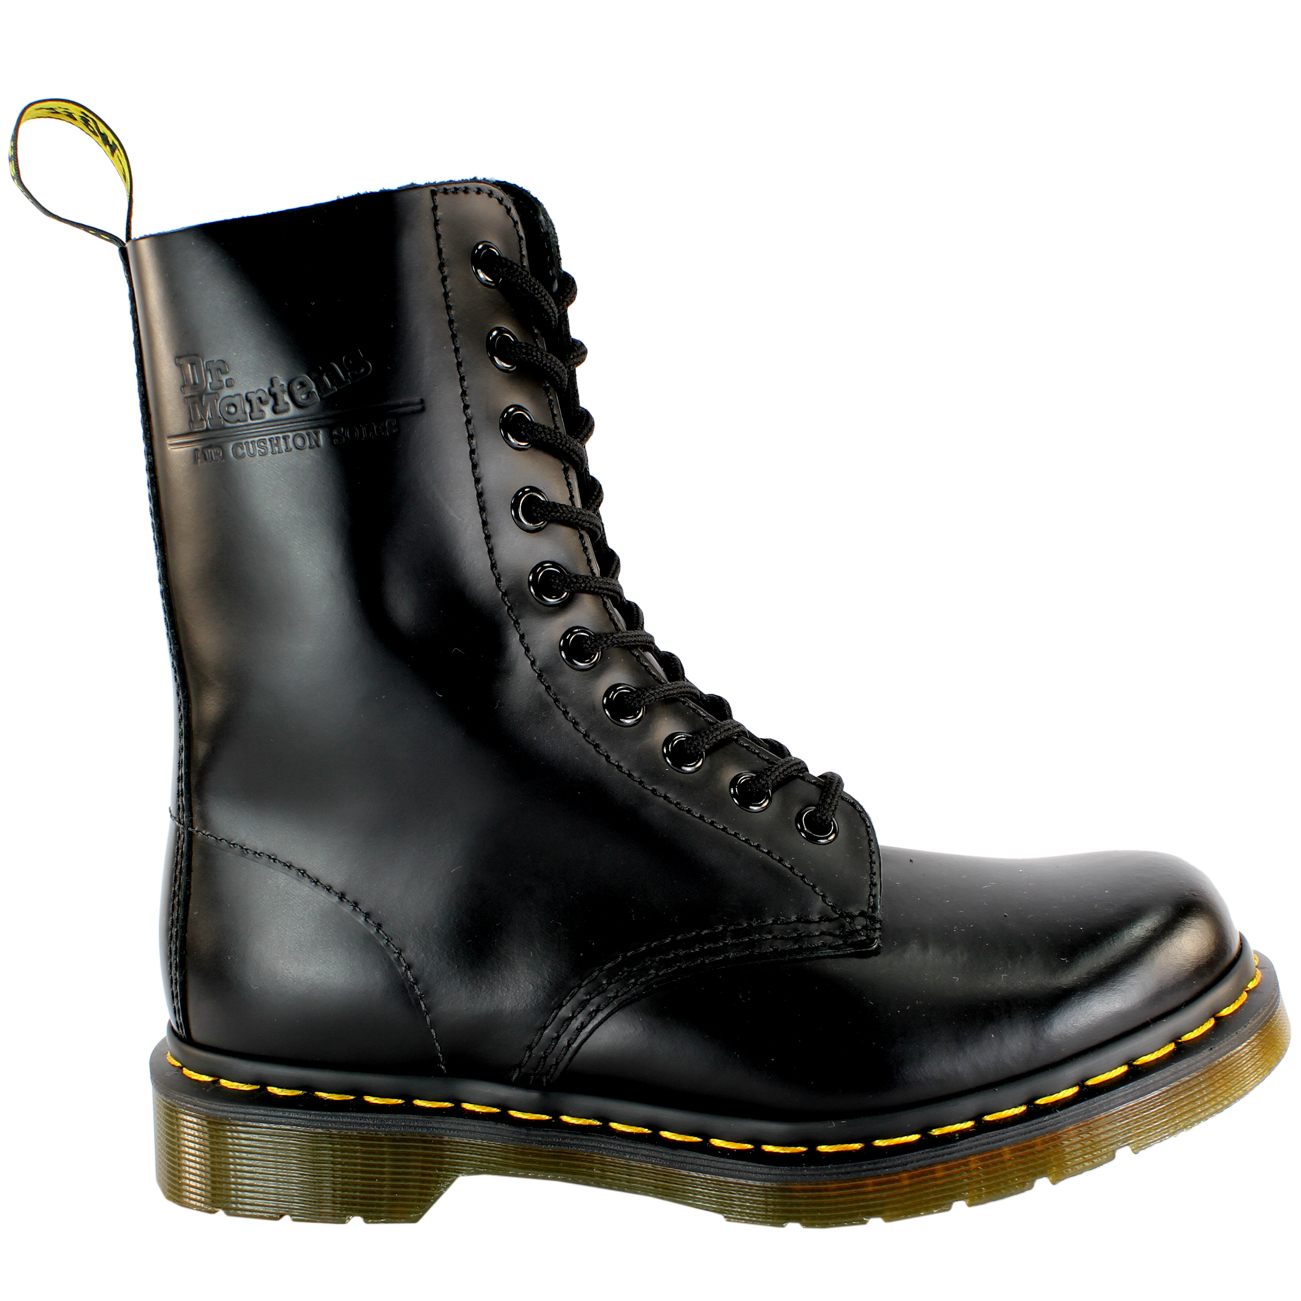 Womens Dr Martens 1490 Classic Lace Up Leather Military Ankle Boot UK Sizes  3-8 06844c024513